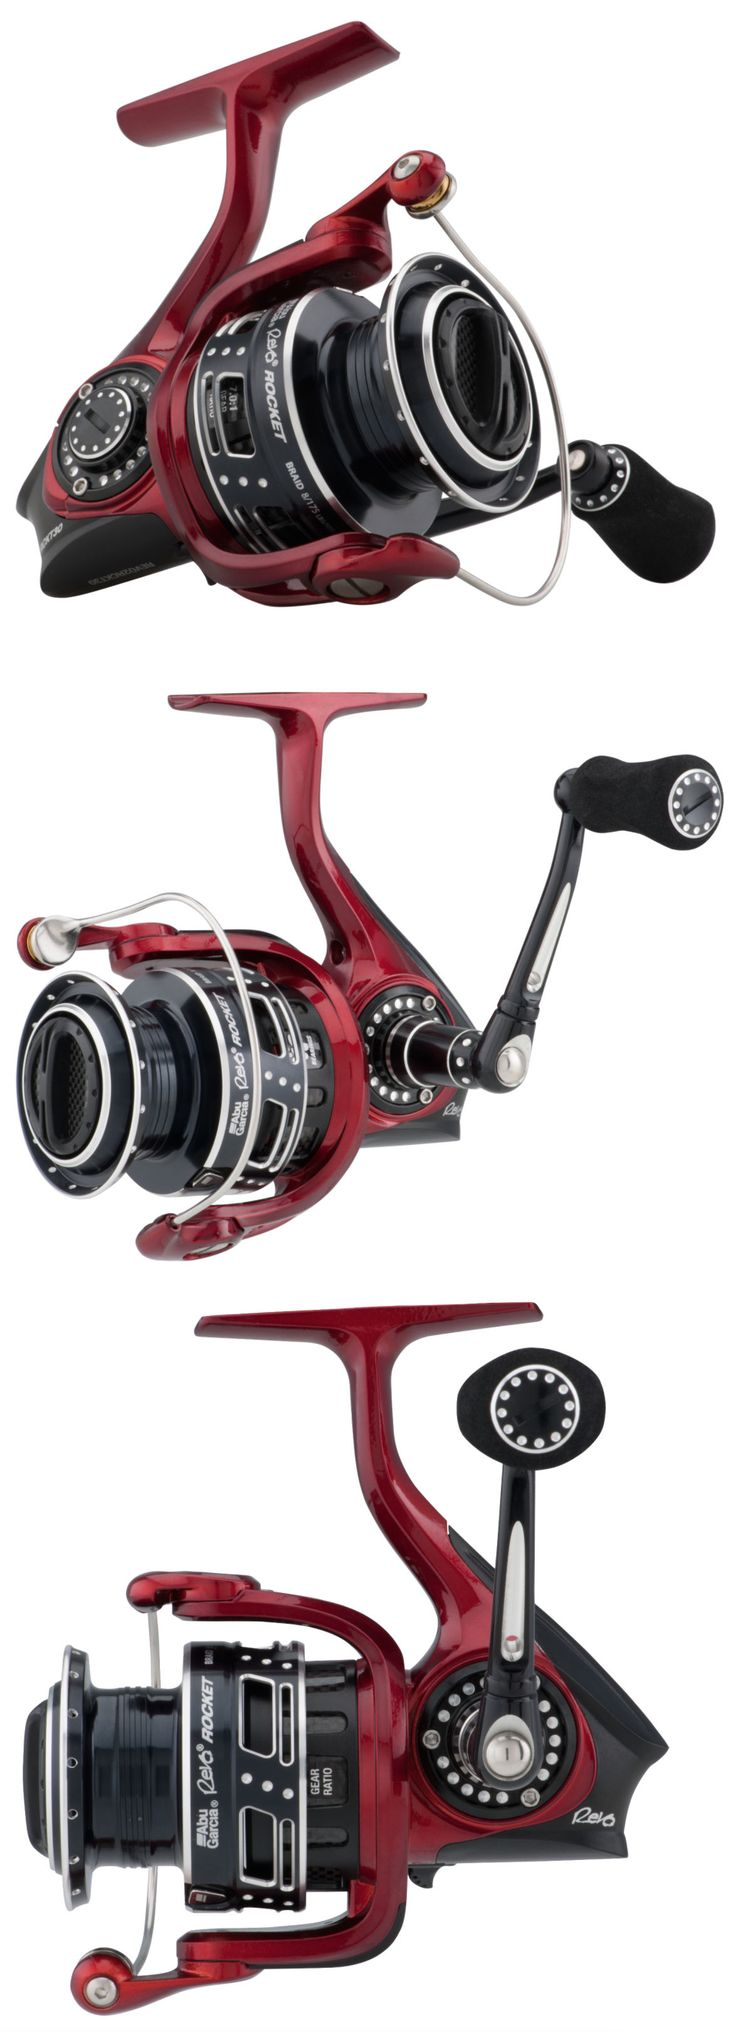 Spinning Reels 36147: Abu Garcia Revo Rocket 30 Spinning Reel | Revo2rckt30 | Free Shipping -> BUY IT NOW ONLY: $160.99 on eBay!